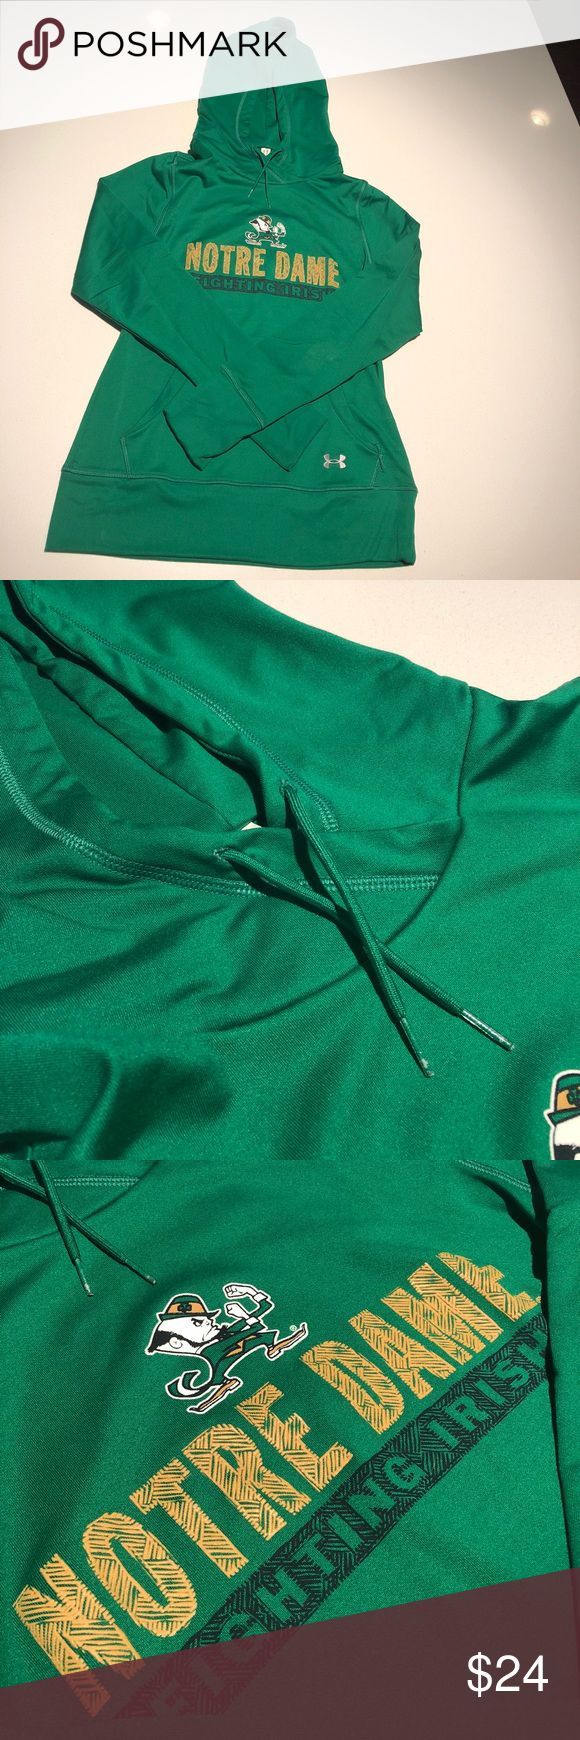 UnderArmour Notre Dame Hoodie Like new, extremely comfortable Notre Dame Fighting Irish UnderArmour Hoodie. Great addition to college football season. There is spandex and Lycra in the fabric count, so it has a slim fit and is very flattering. Not your normal bulkie Hoodie. Size Medium since it has a slim fit and runs a bit small. Opportunity to add an authentic NCAA piece for less :) Under Armour Tops Sweatshirts & Hoodies